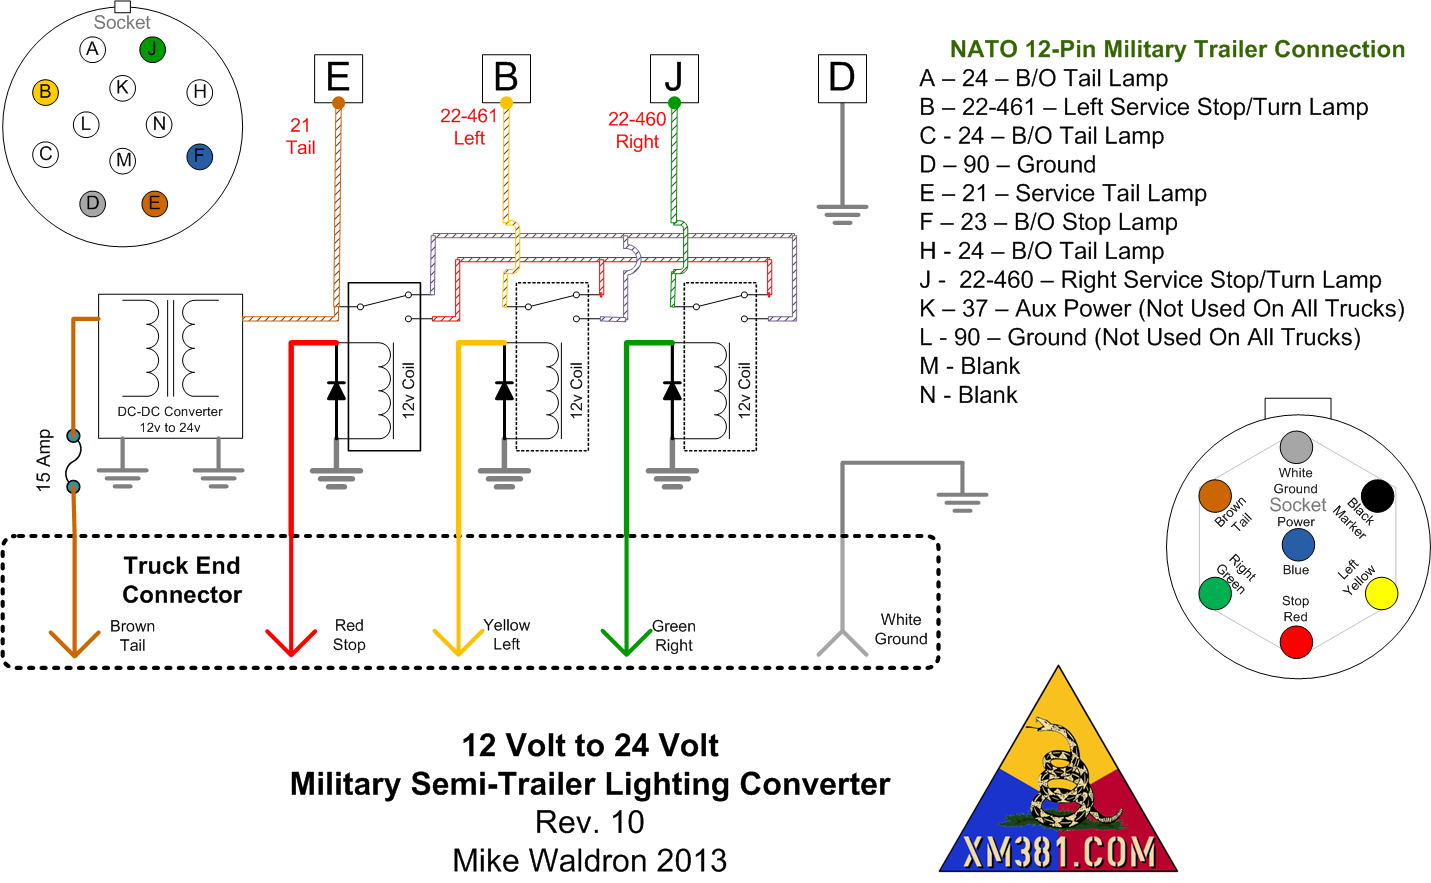 Xm381 12 Volt Civllian Truck To 24 Military Trailer Lighting Wiring Adapter Trailers Nato Socket